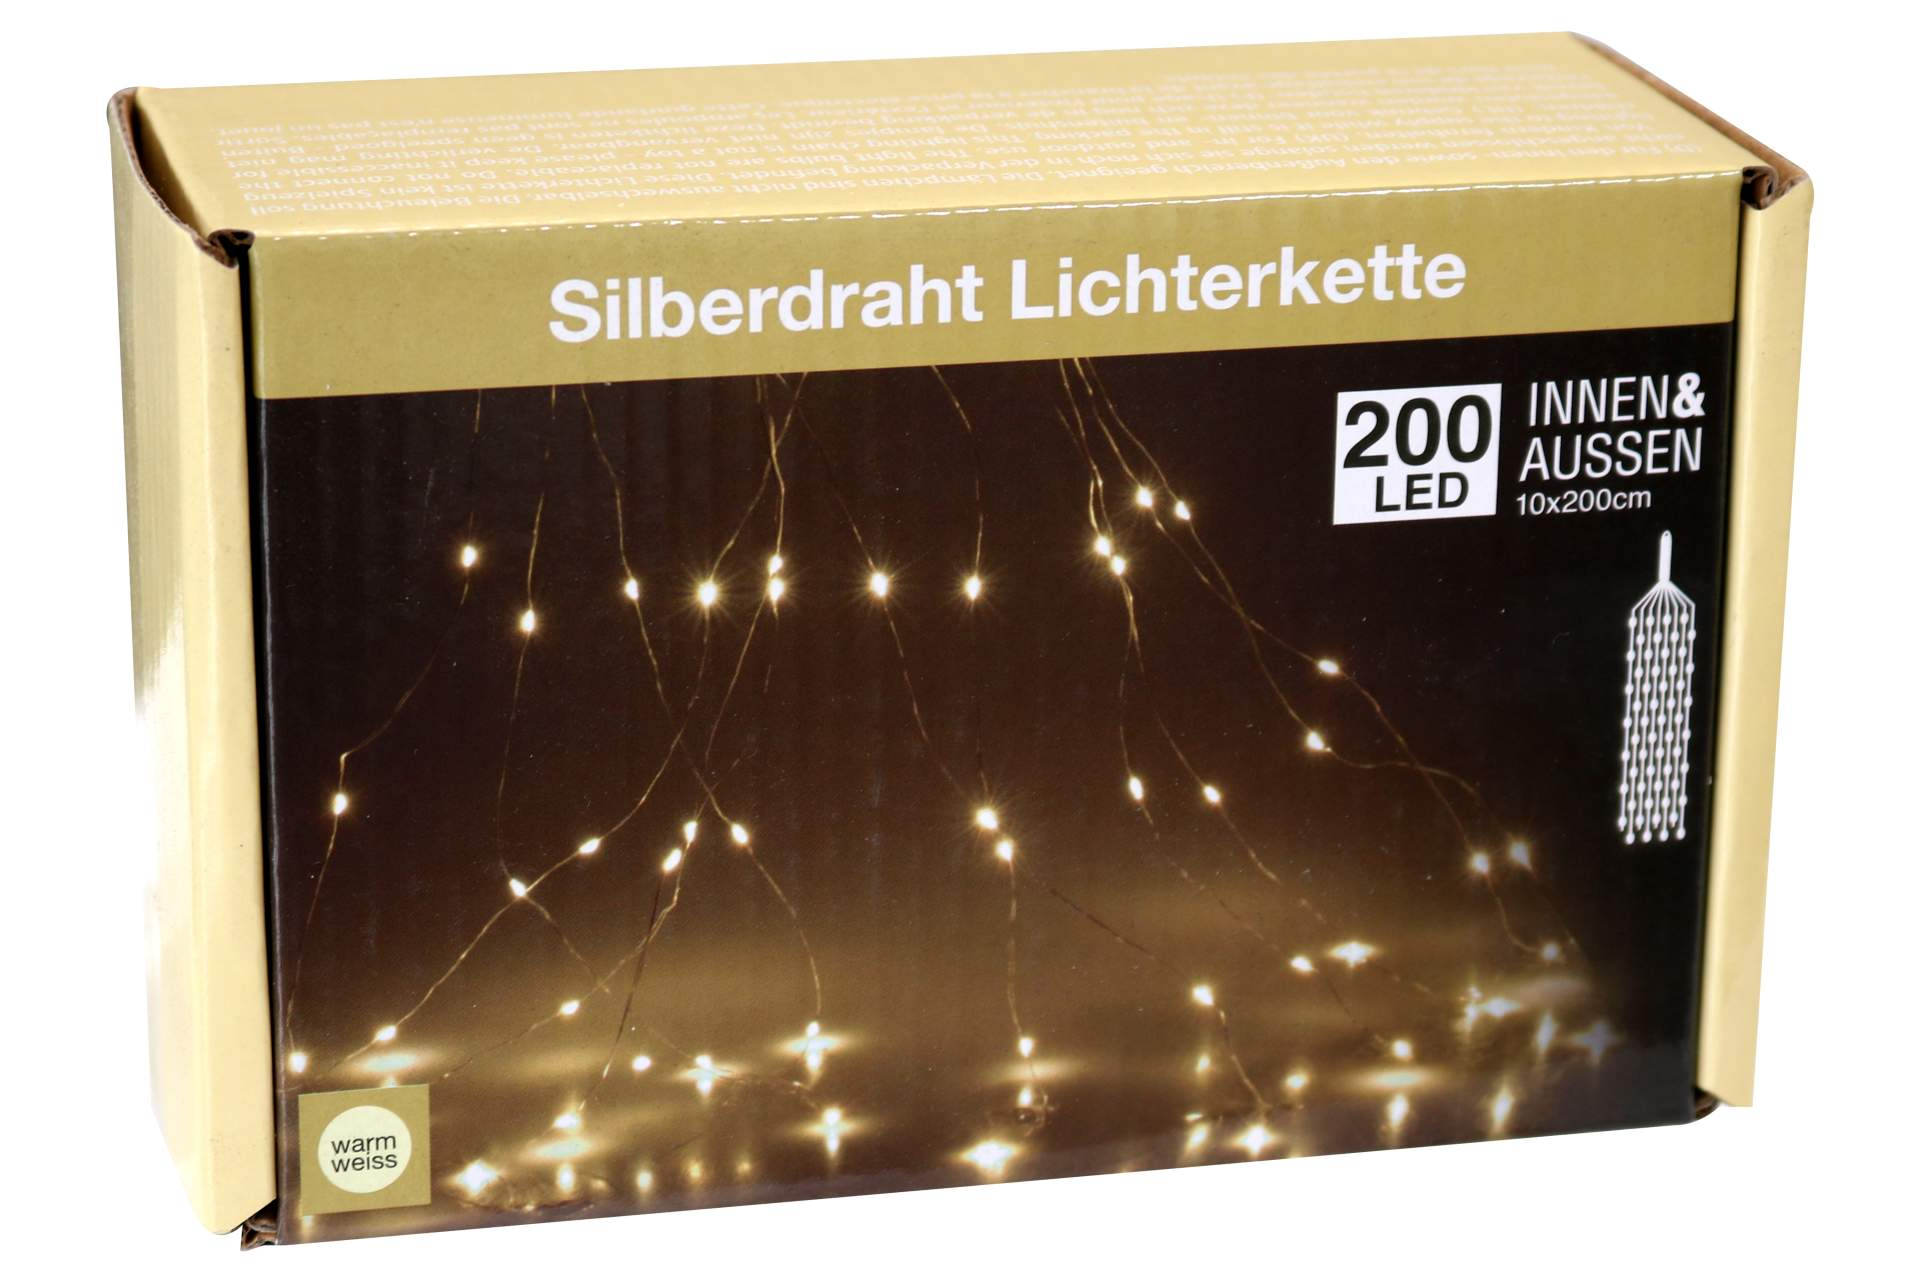 silberdraht lichterkette warmweiss 200 led f r au en und innnen deko weihnachten ebay. Black Bedroom Furniture Sets. Home Design Ideas